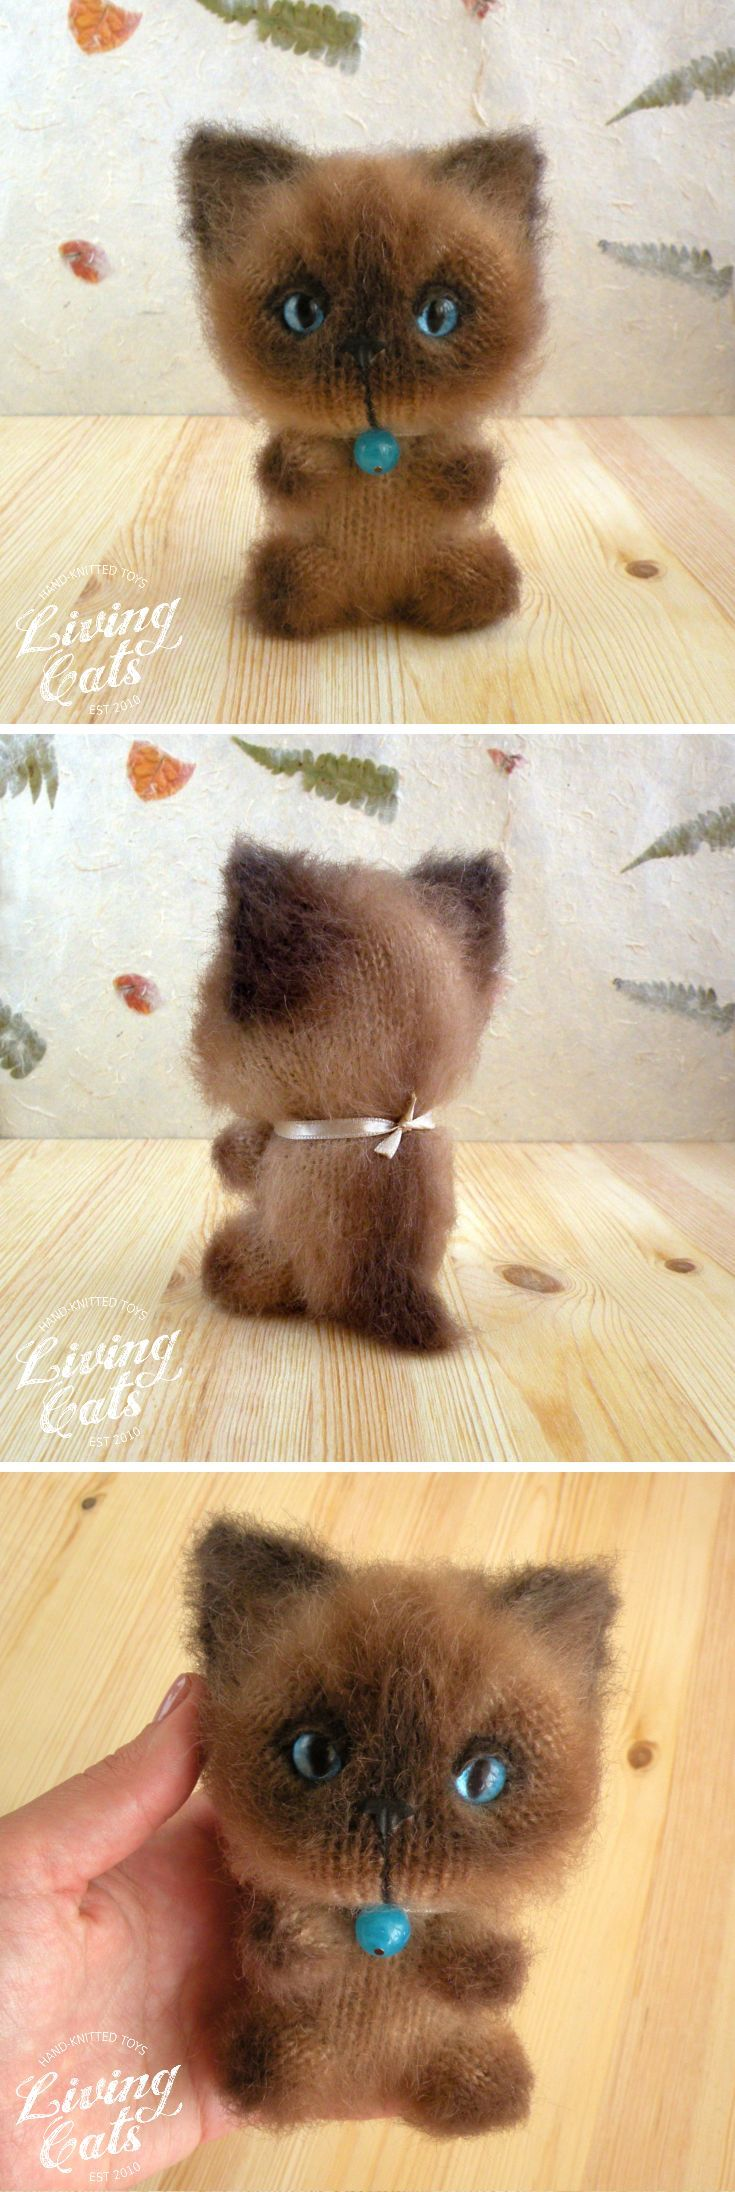 Siamese cat toy, cat plushie, stuffed kitty, knitted thai cat, soft kitty, cat lover gift